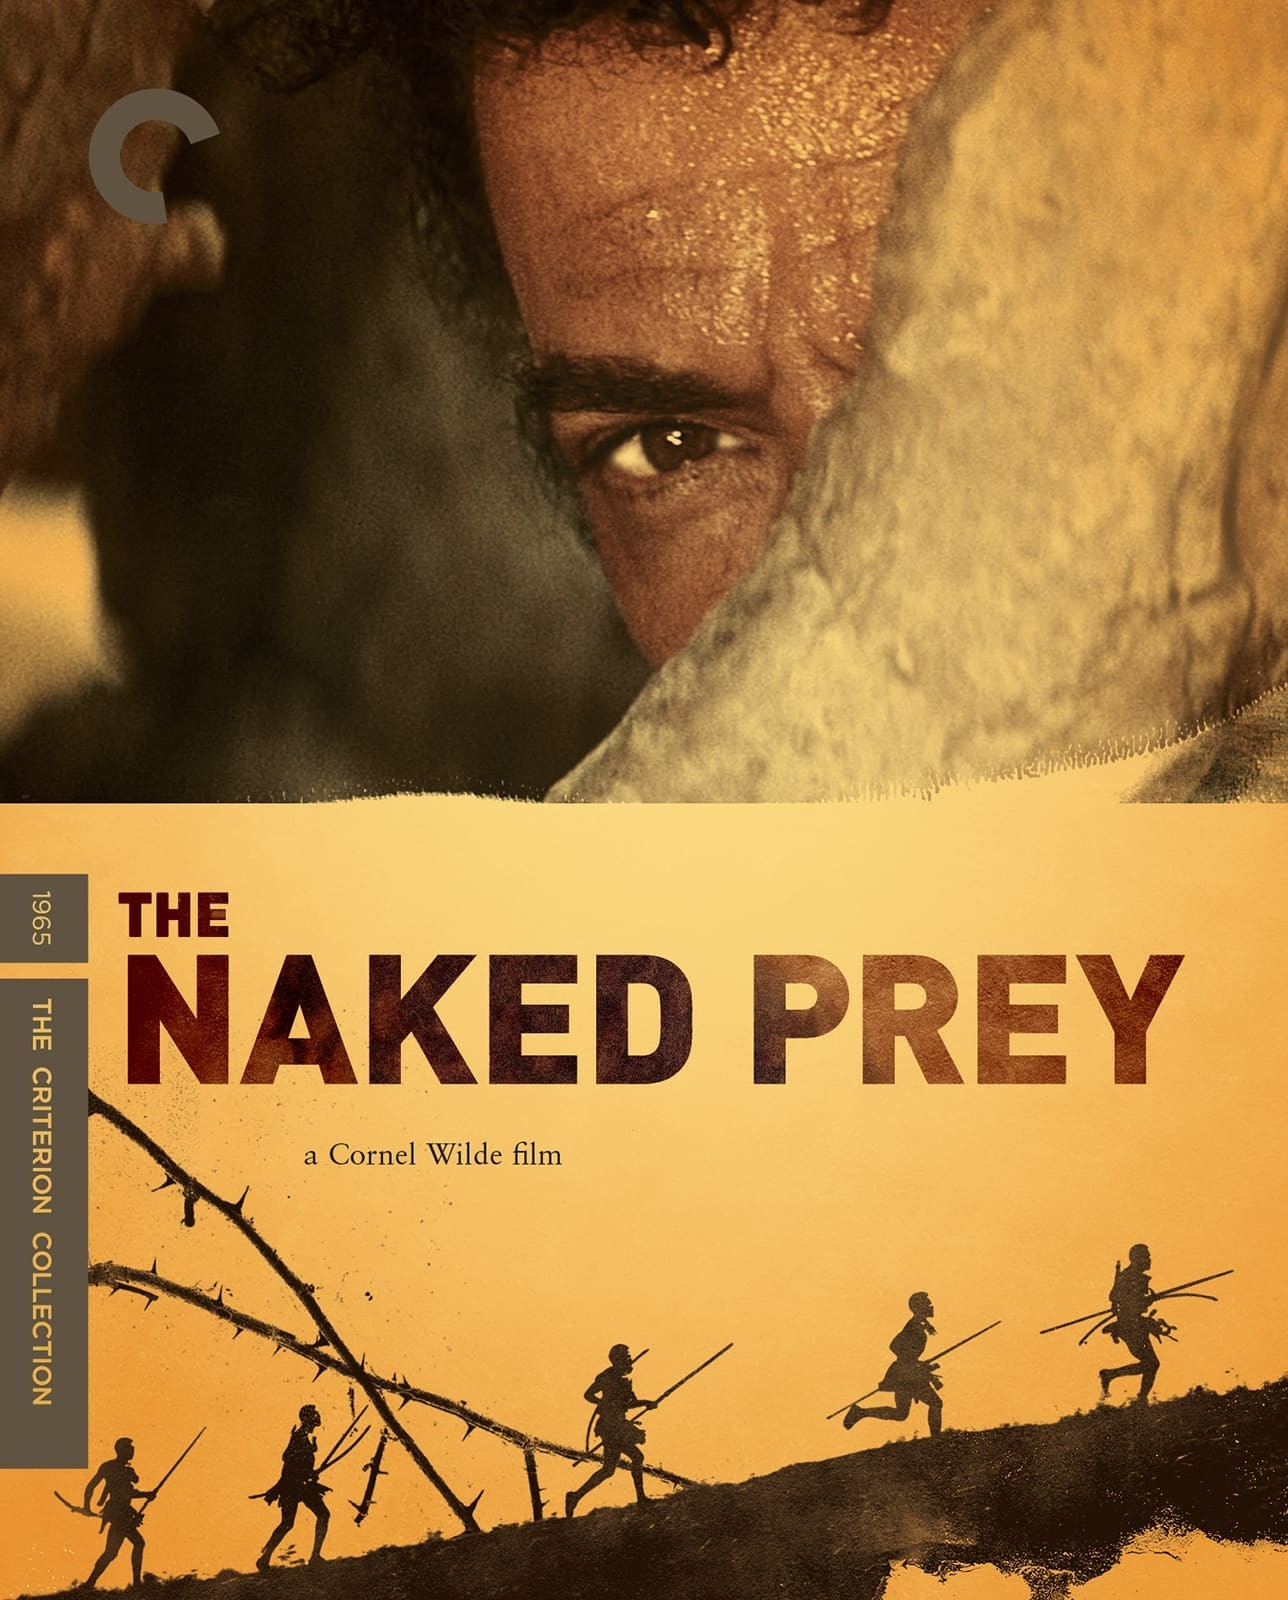 The Naked Prey (The Criterion Collection)(Blu-ray)(Region A)